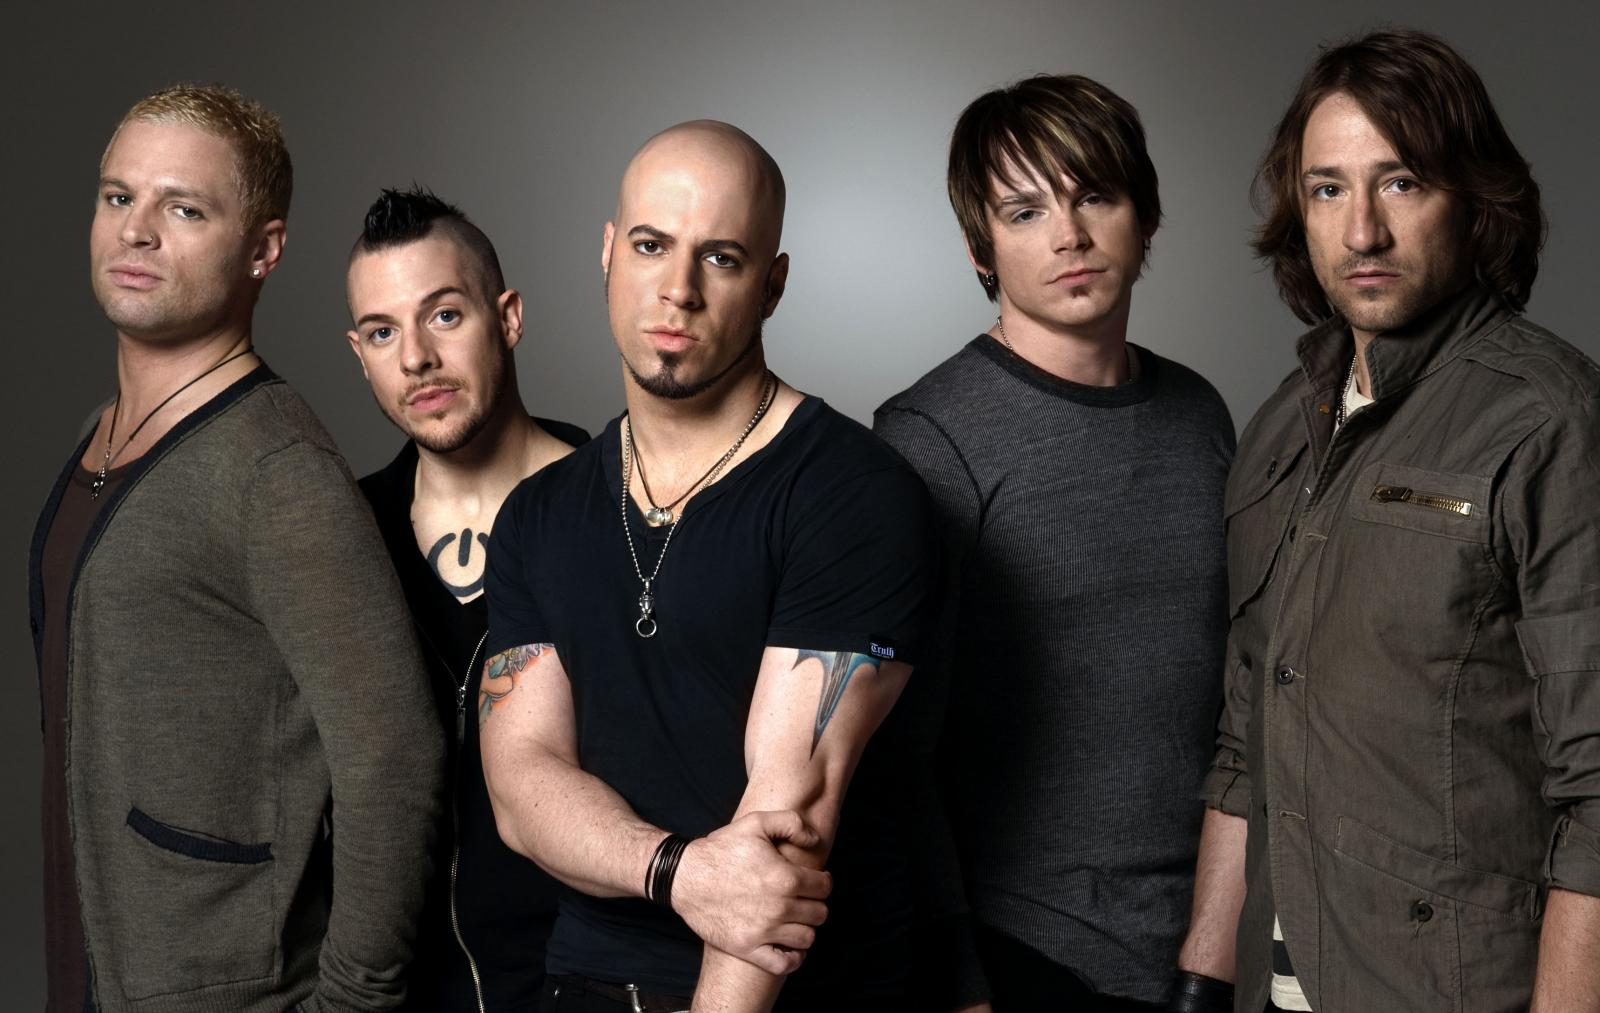 Top 10 Hits Daughtry mp3 download - mp3bearz.me